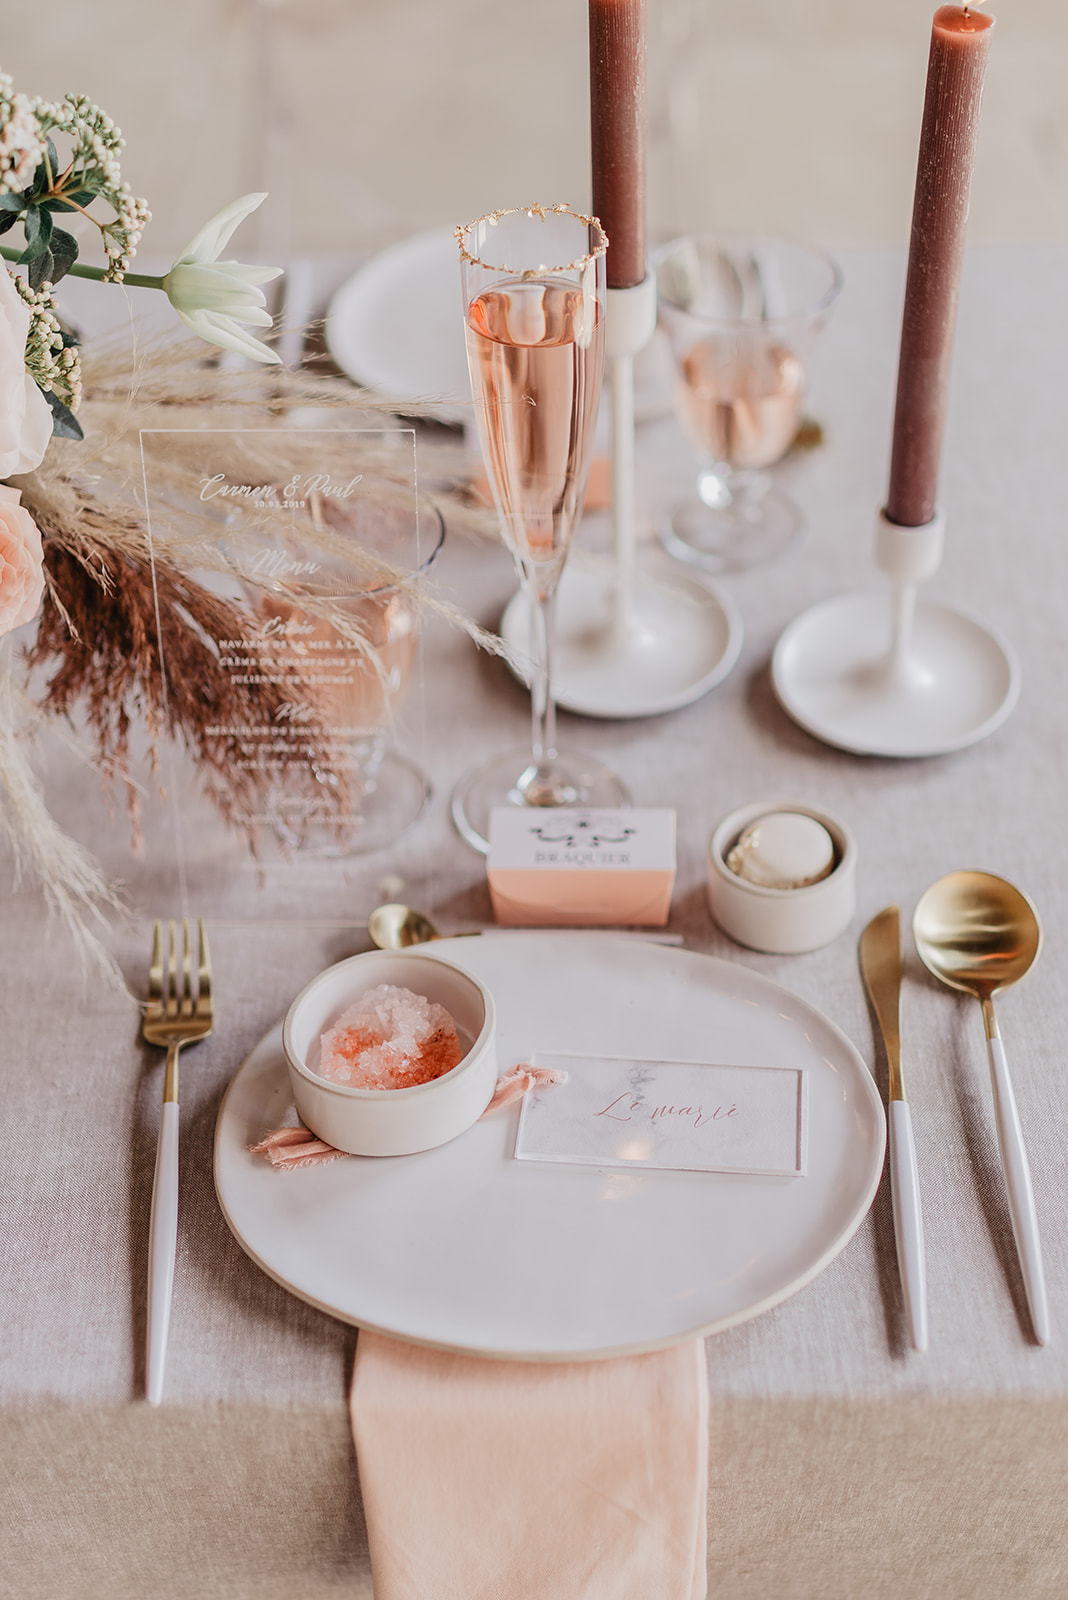 Lovelyinstants-wedding-planner-fleuriste-designer-France-Chateau-ThonneLesPres-weddingtable-0907_websize